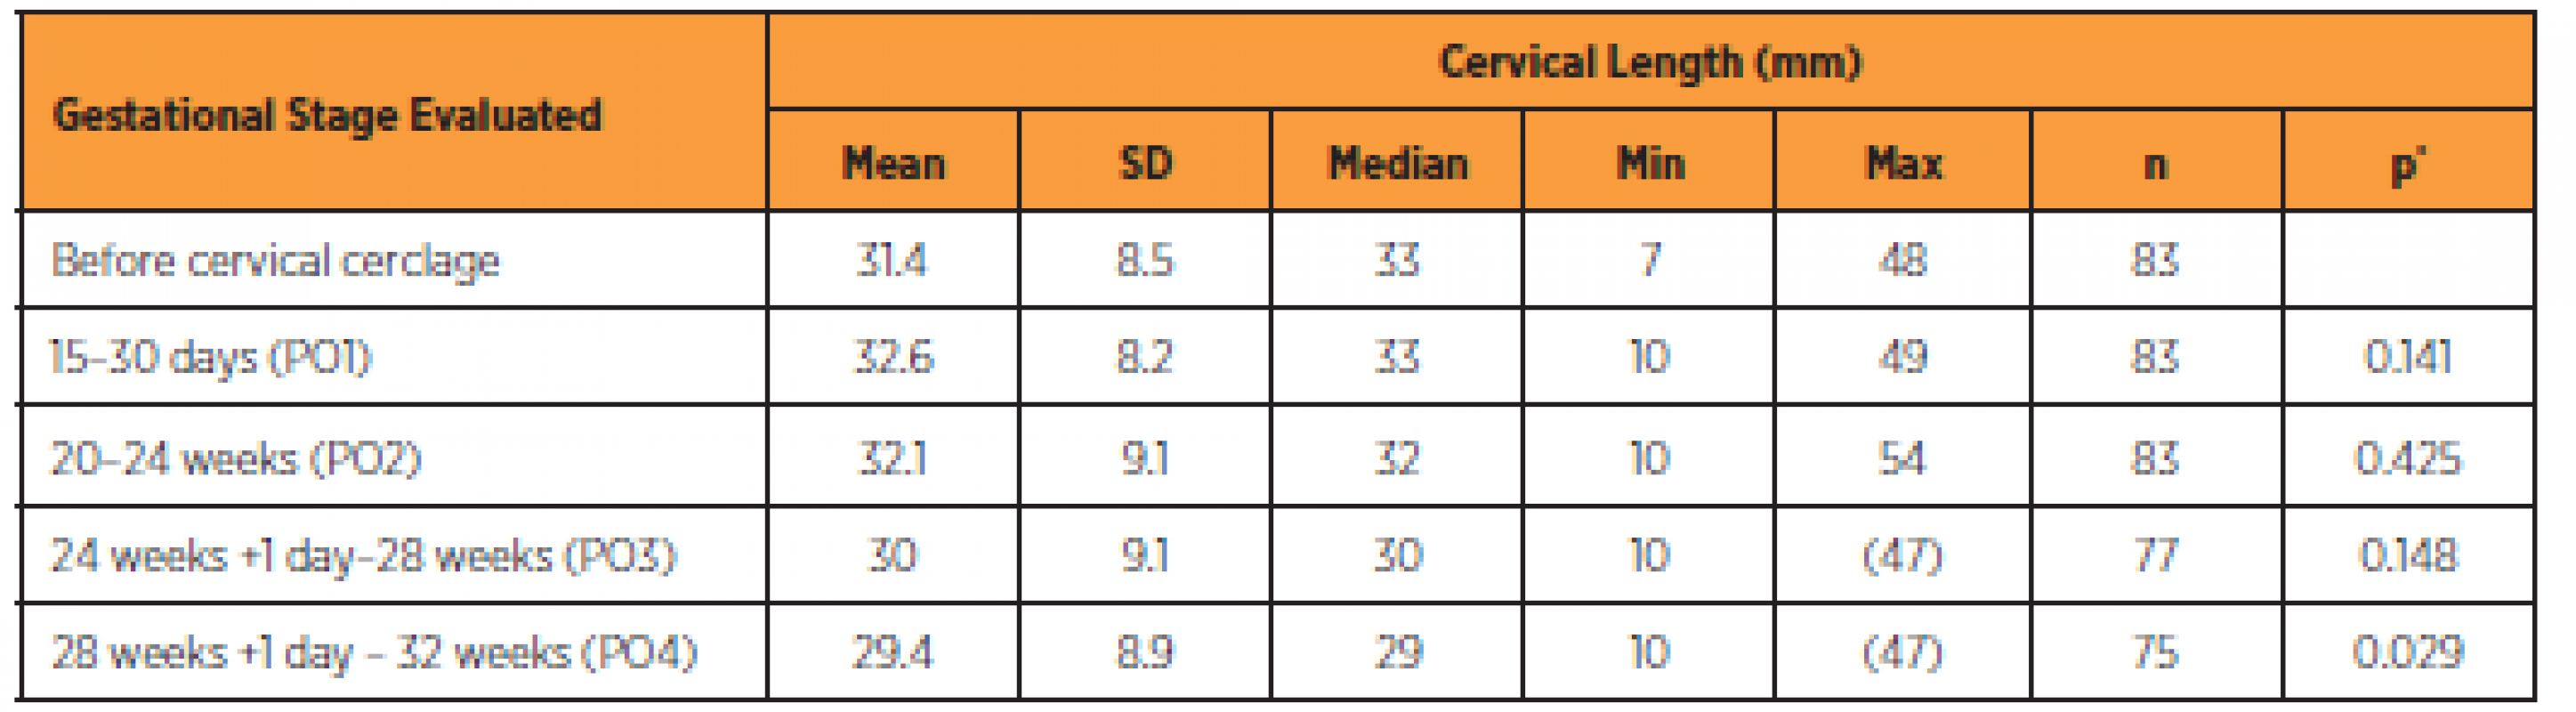 Comparison between cervical lengths at different stages before and after cervical cerclage